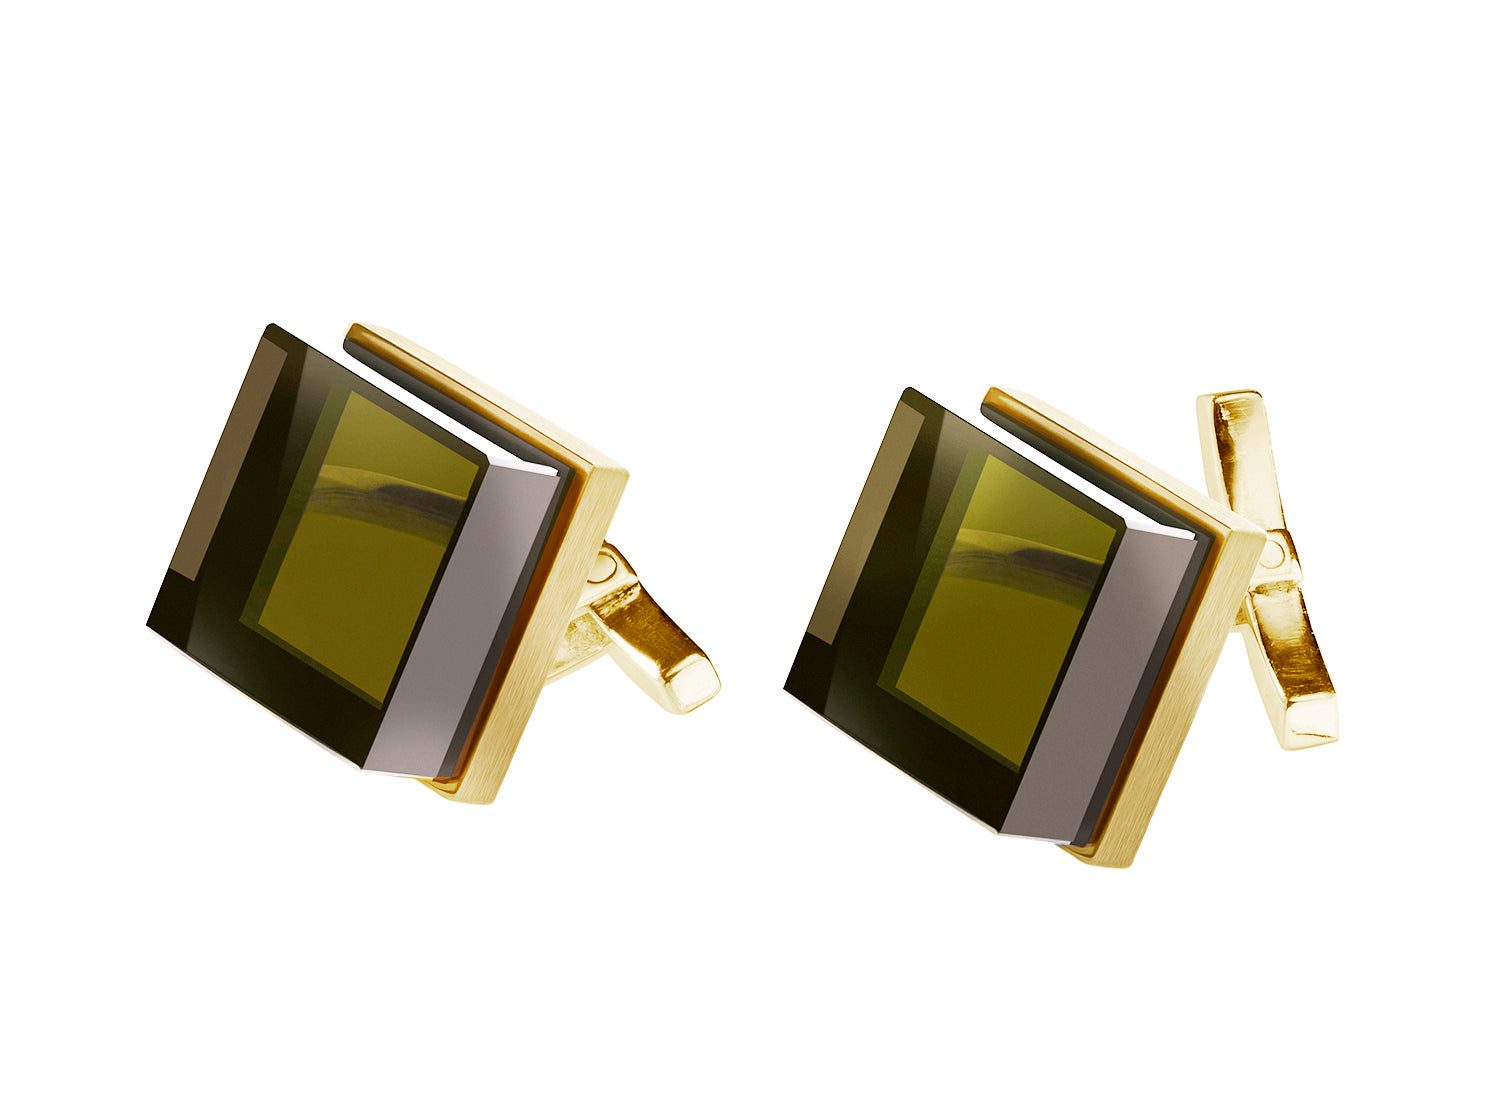 18 Karat Yellow Gold Contemporary Ink Cufflinks by the Artist with Morion